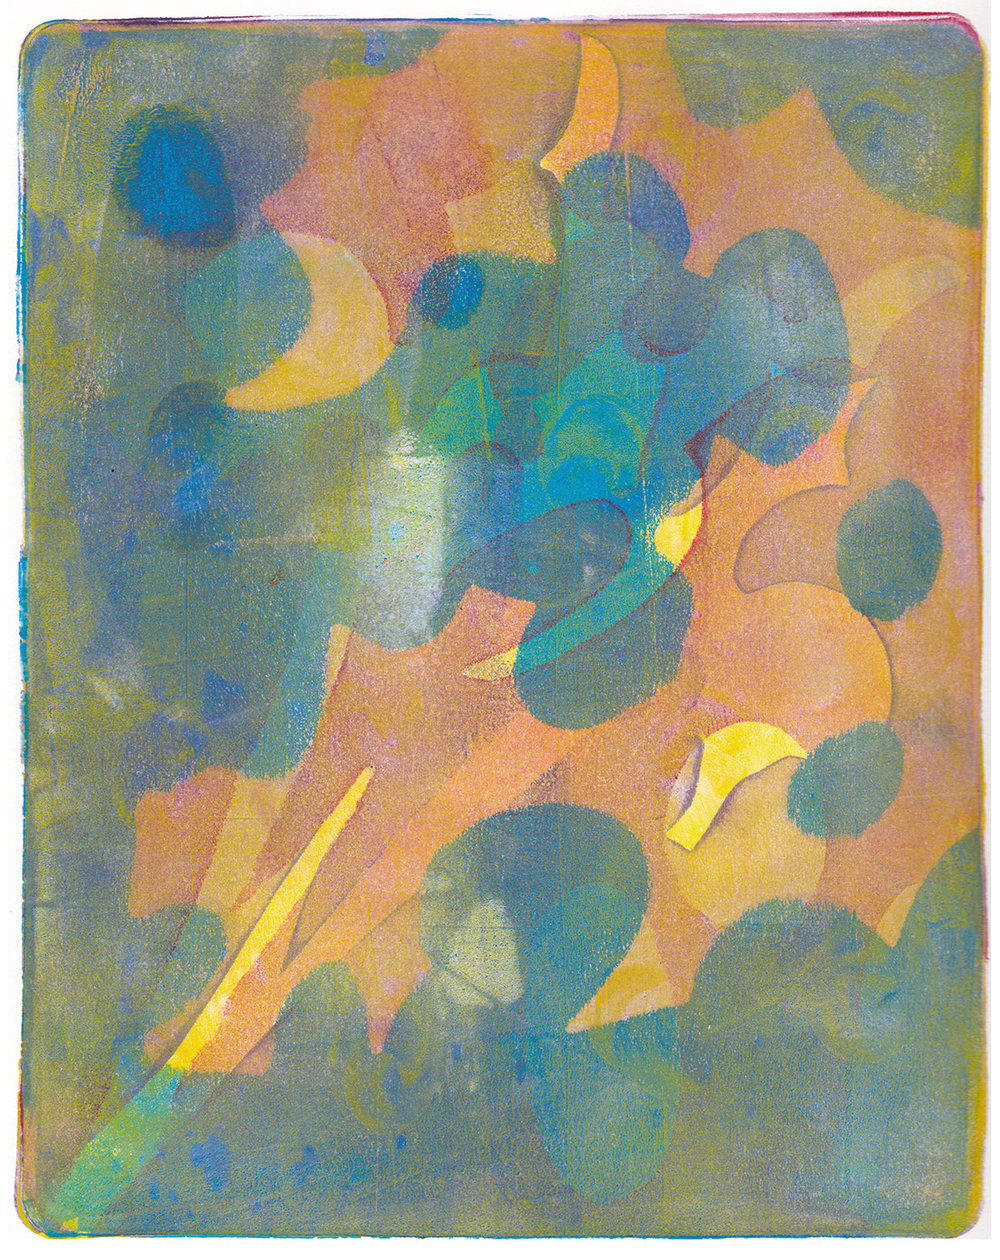 Monica DeSalvo,  Sun Shadow , Gelatin monoprint with acrylic, 12x16